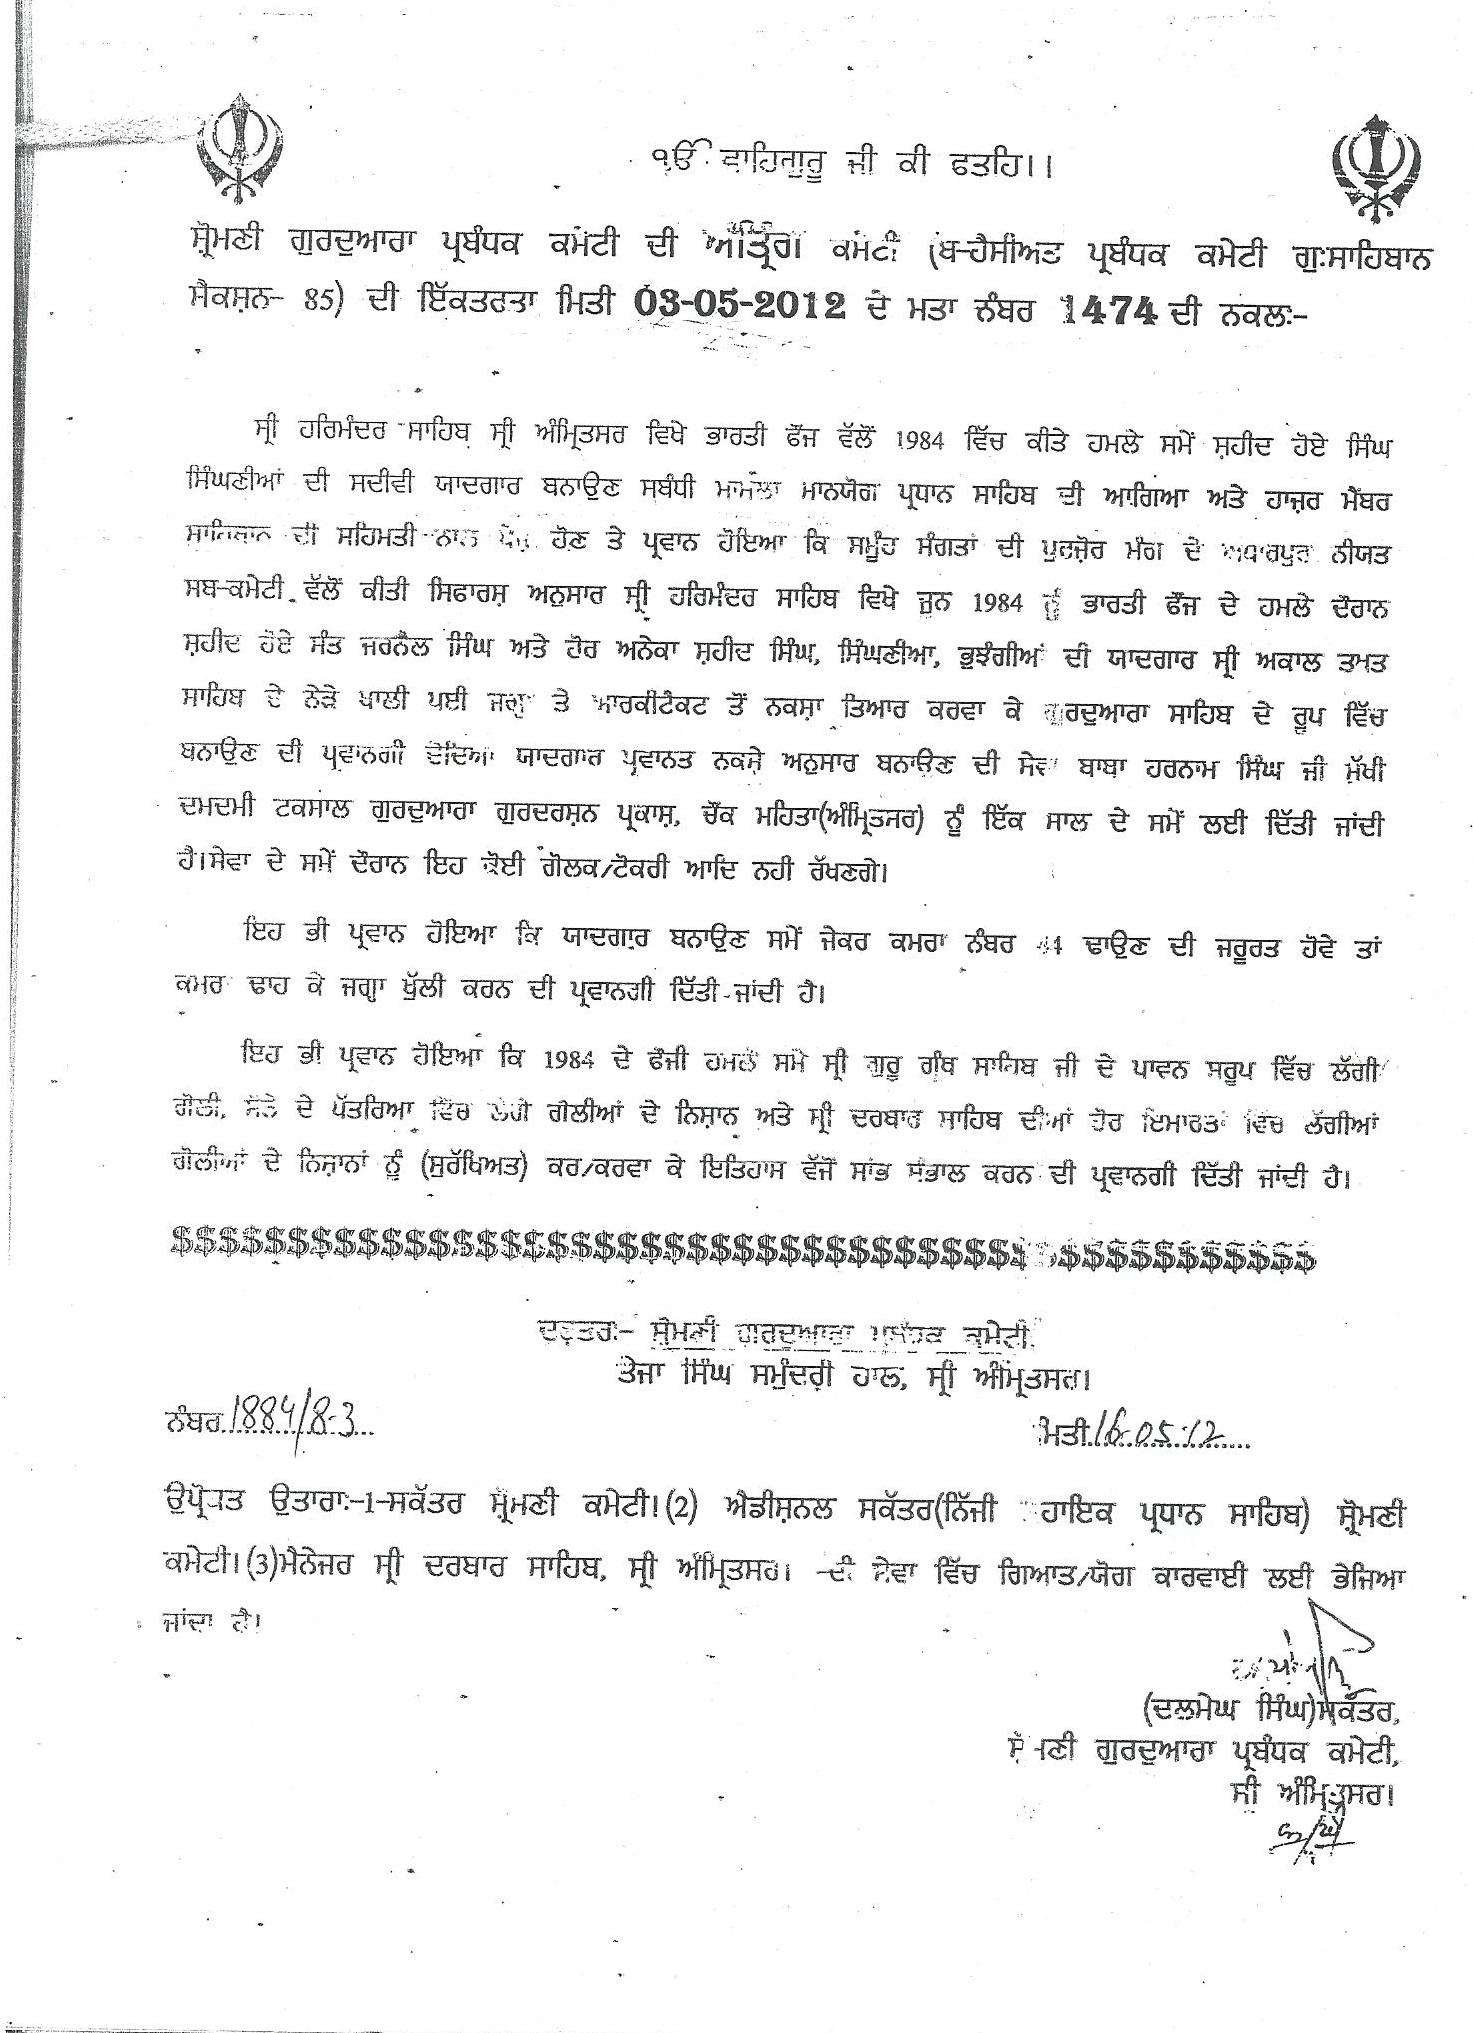 Resolution Number 1474 by SGPC regarding building a memorial for Sant Jarnail Singh Bhindranwale and other martyrs of June 1984